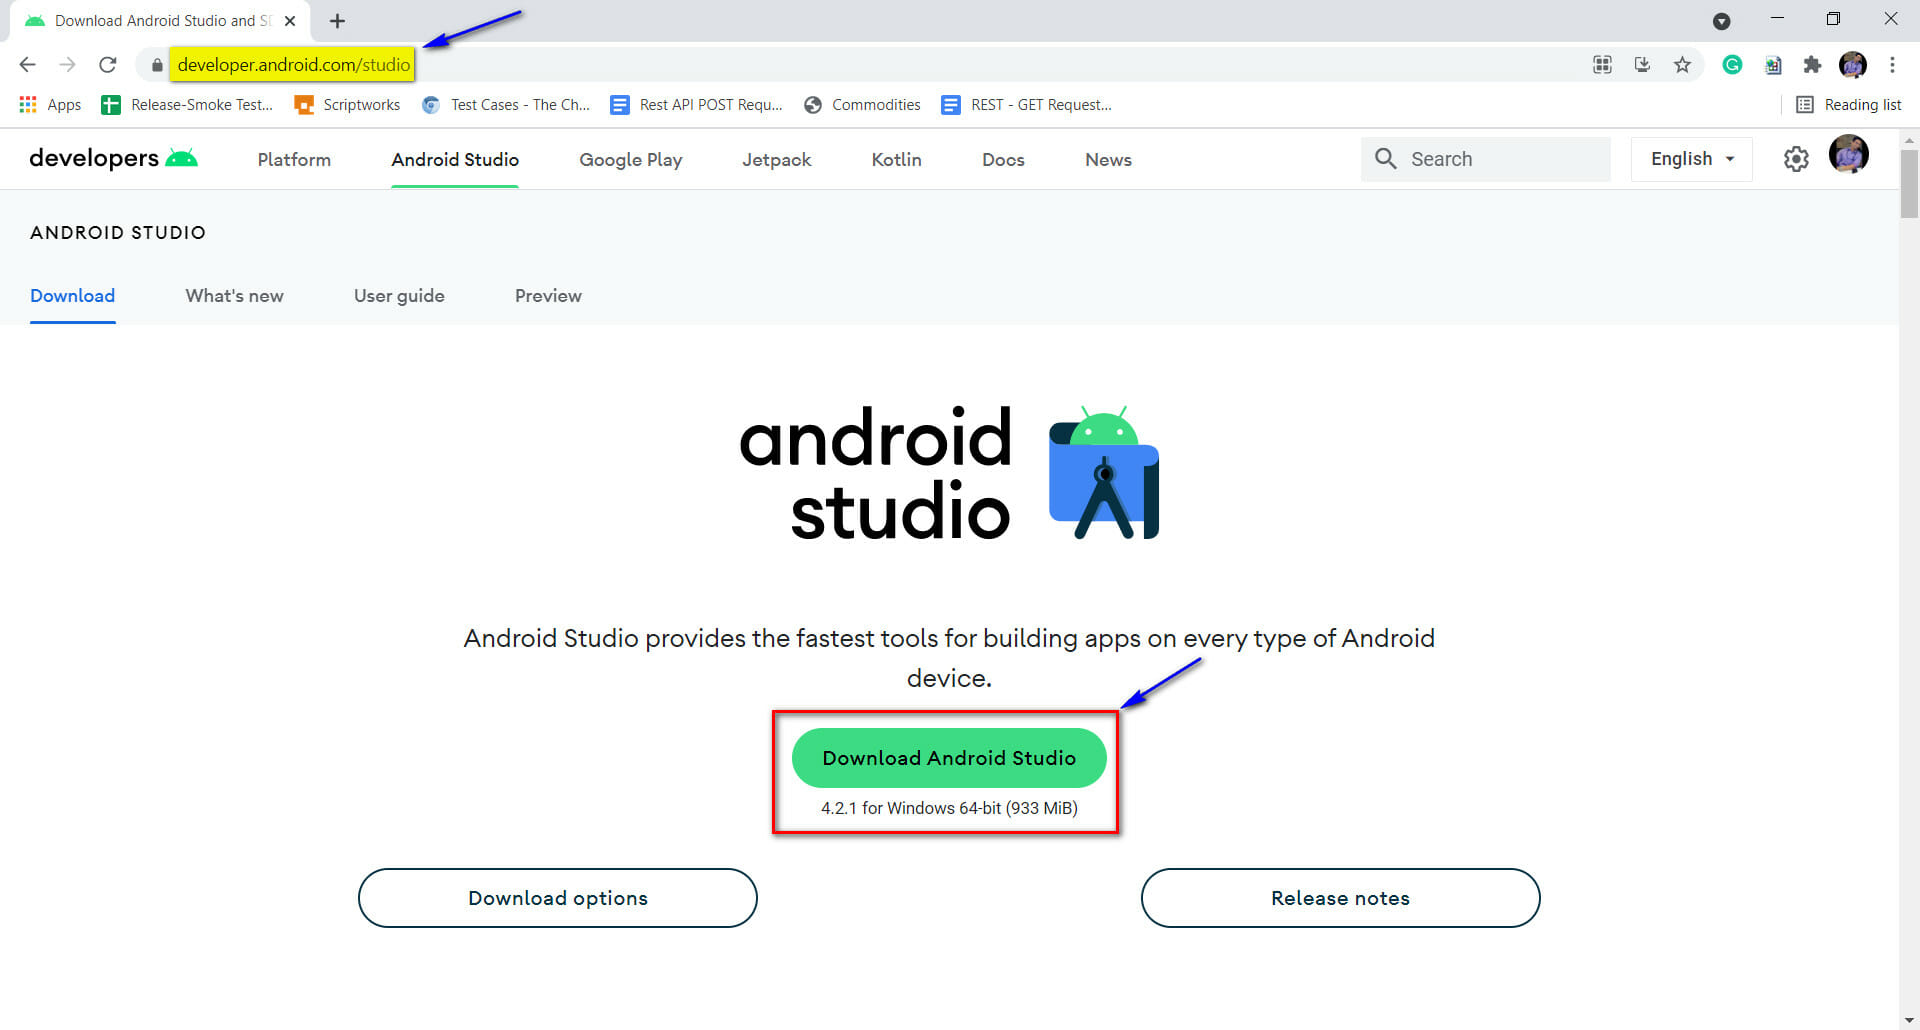 Navigate to Android Studio